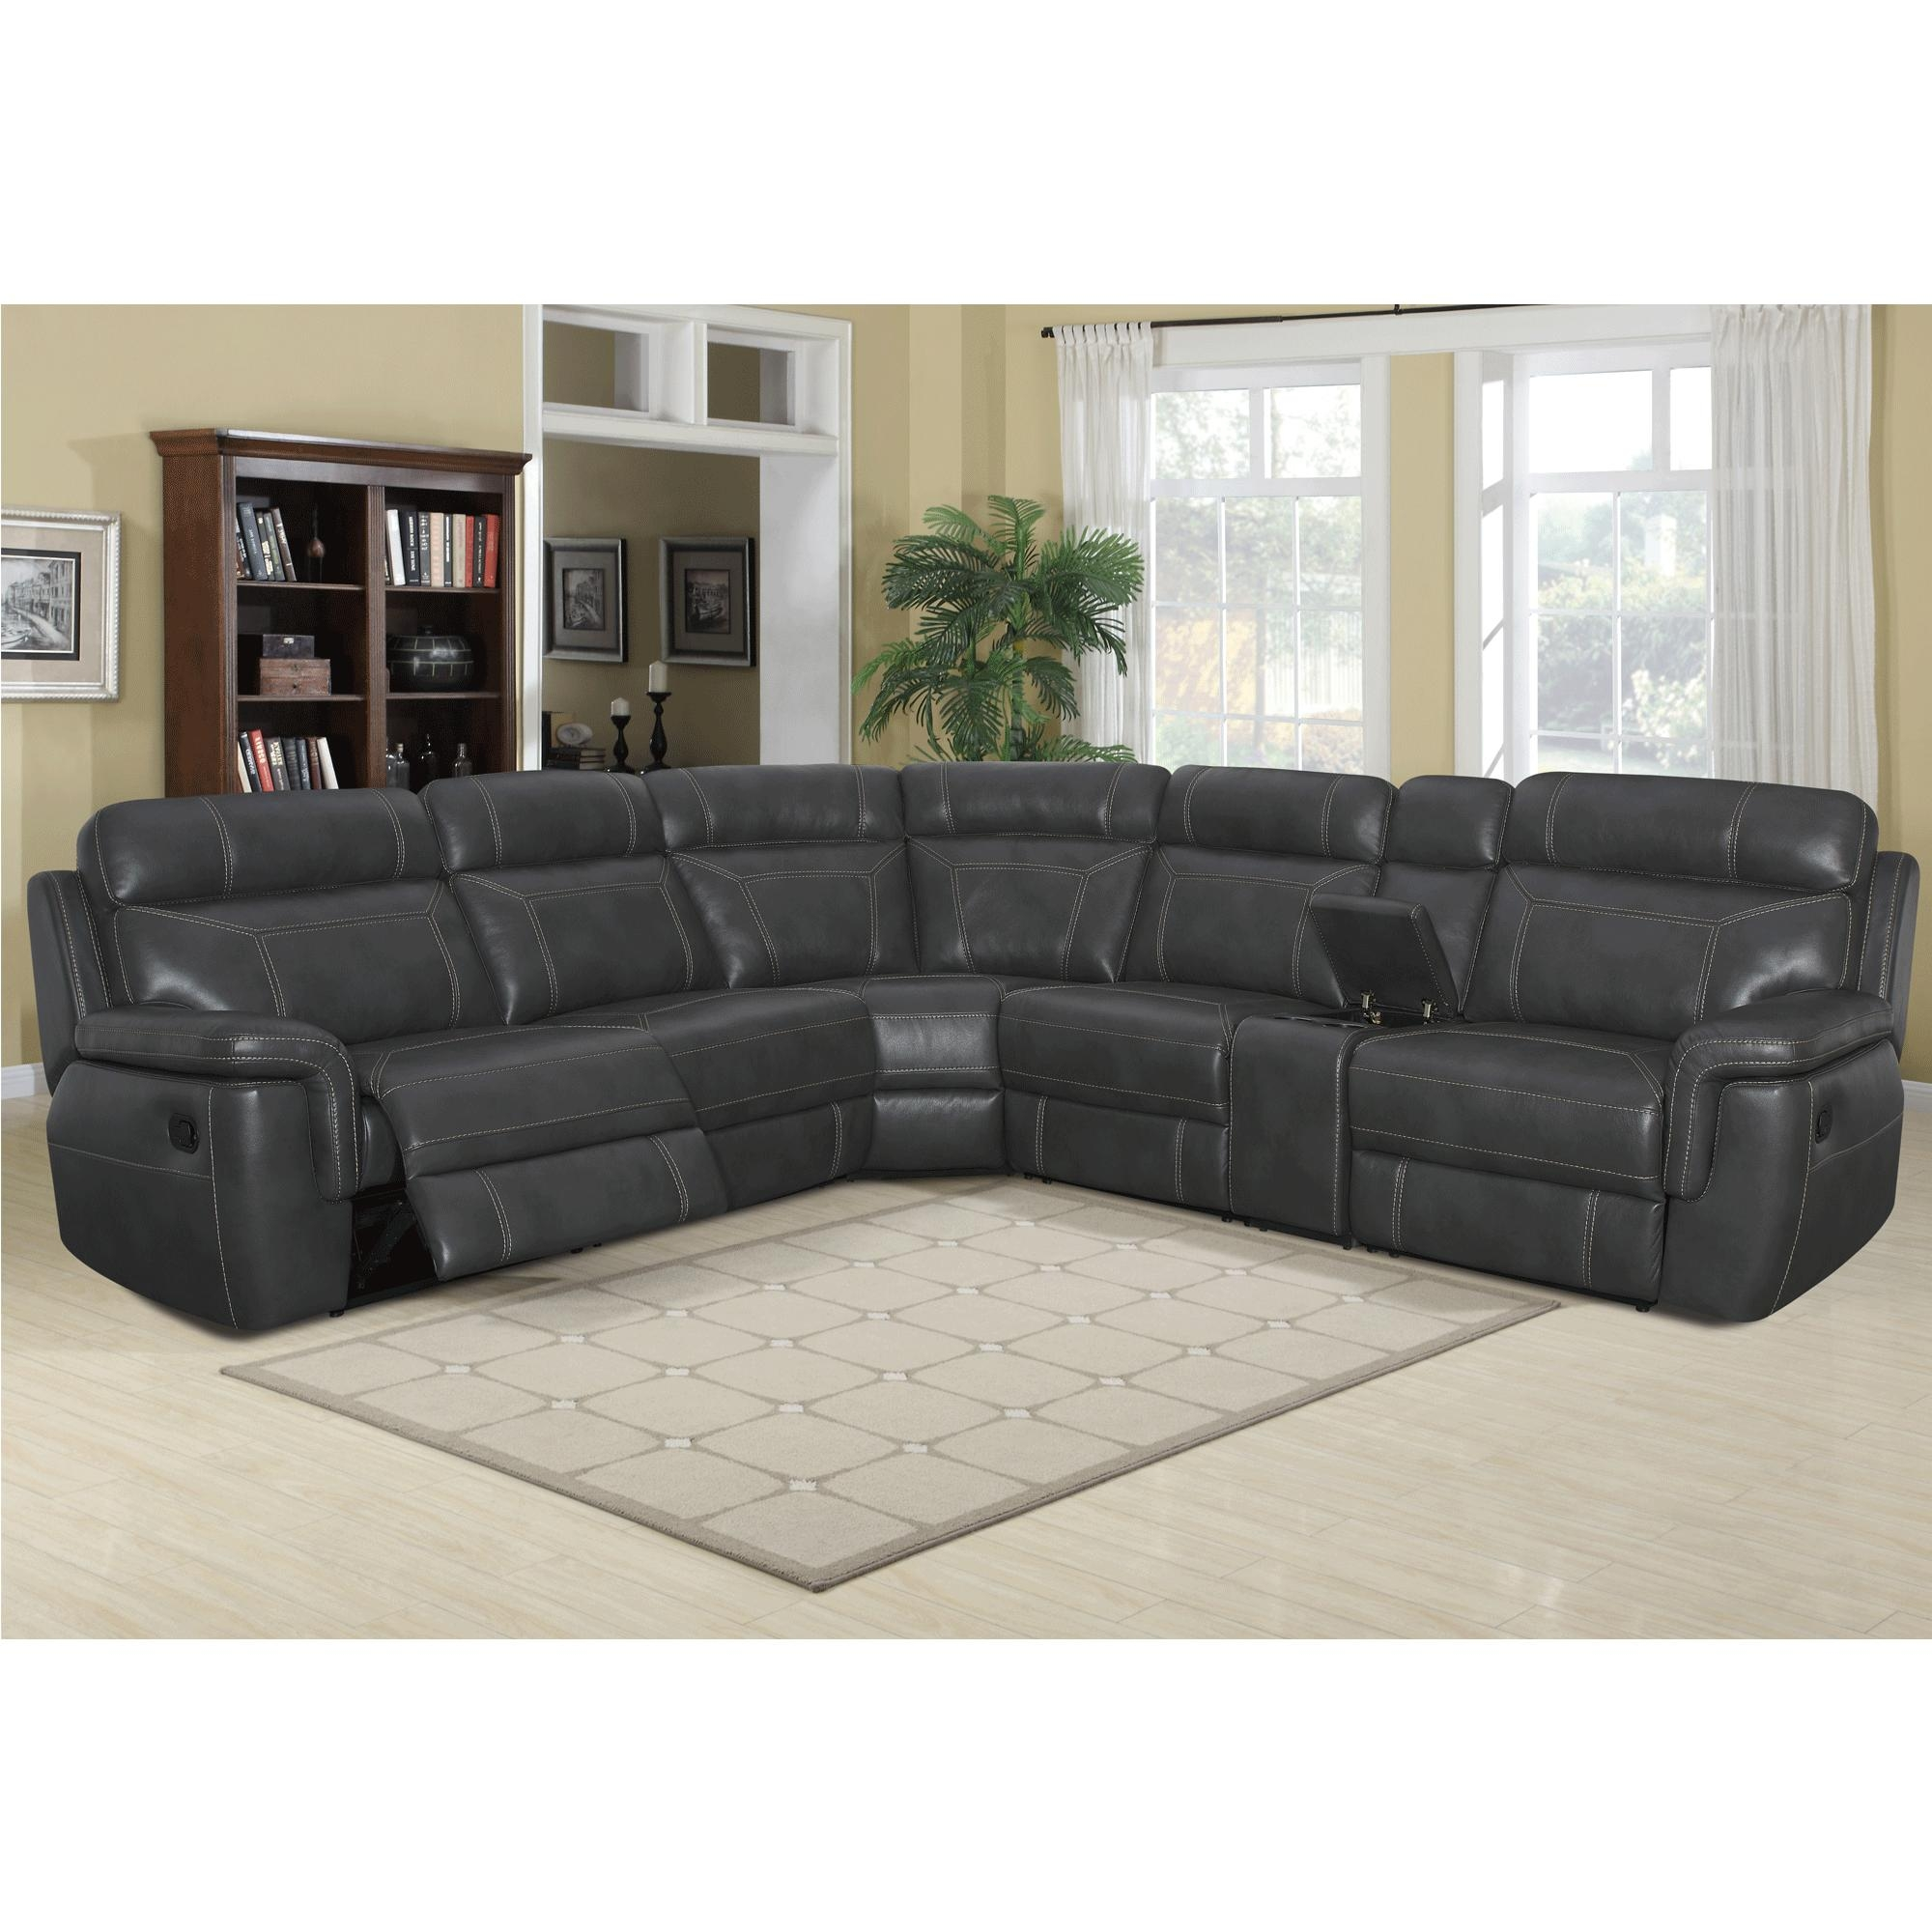 Furniture: Interesting Microfiber Sectional For Living Room Throughout Microfiber Suede Sectional (View 13 of 20)